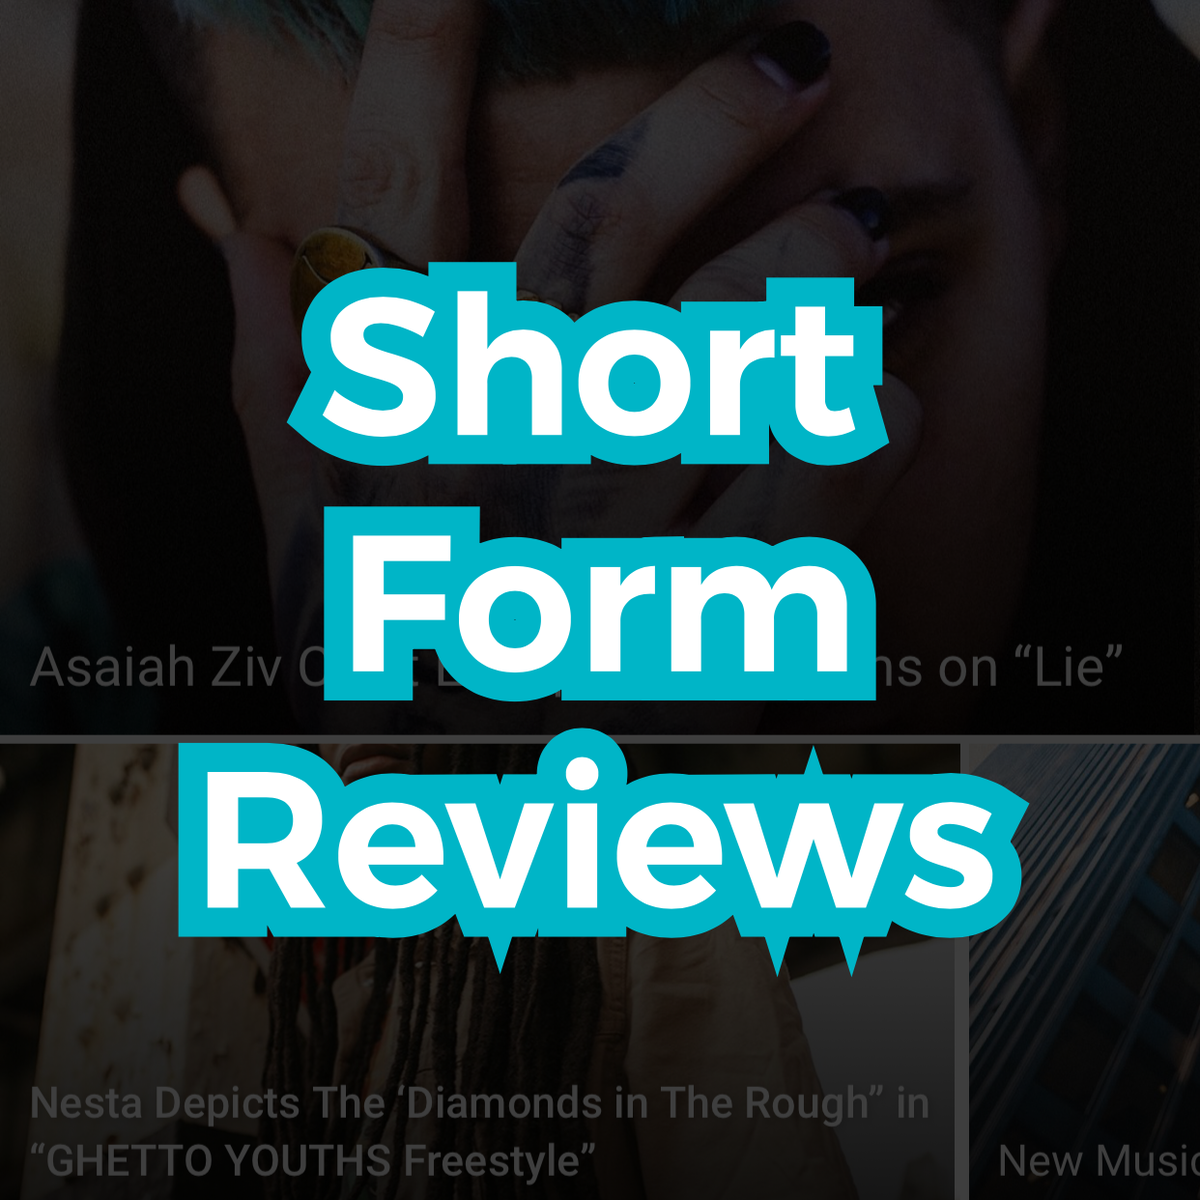 Image of Short Form Reviews